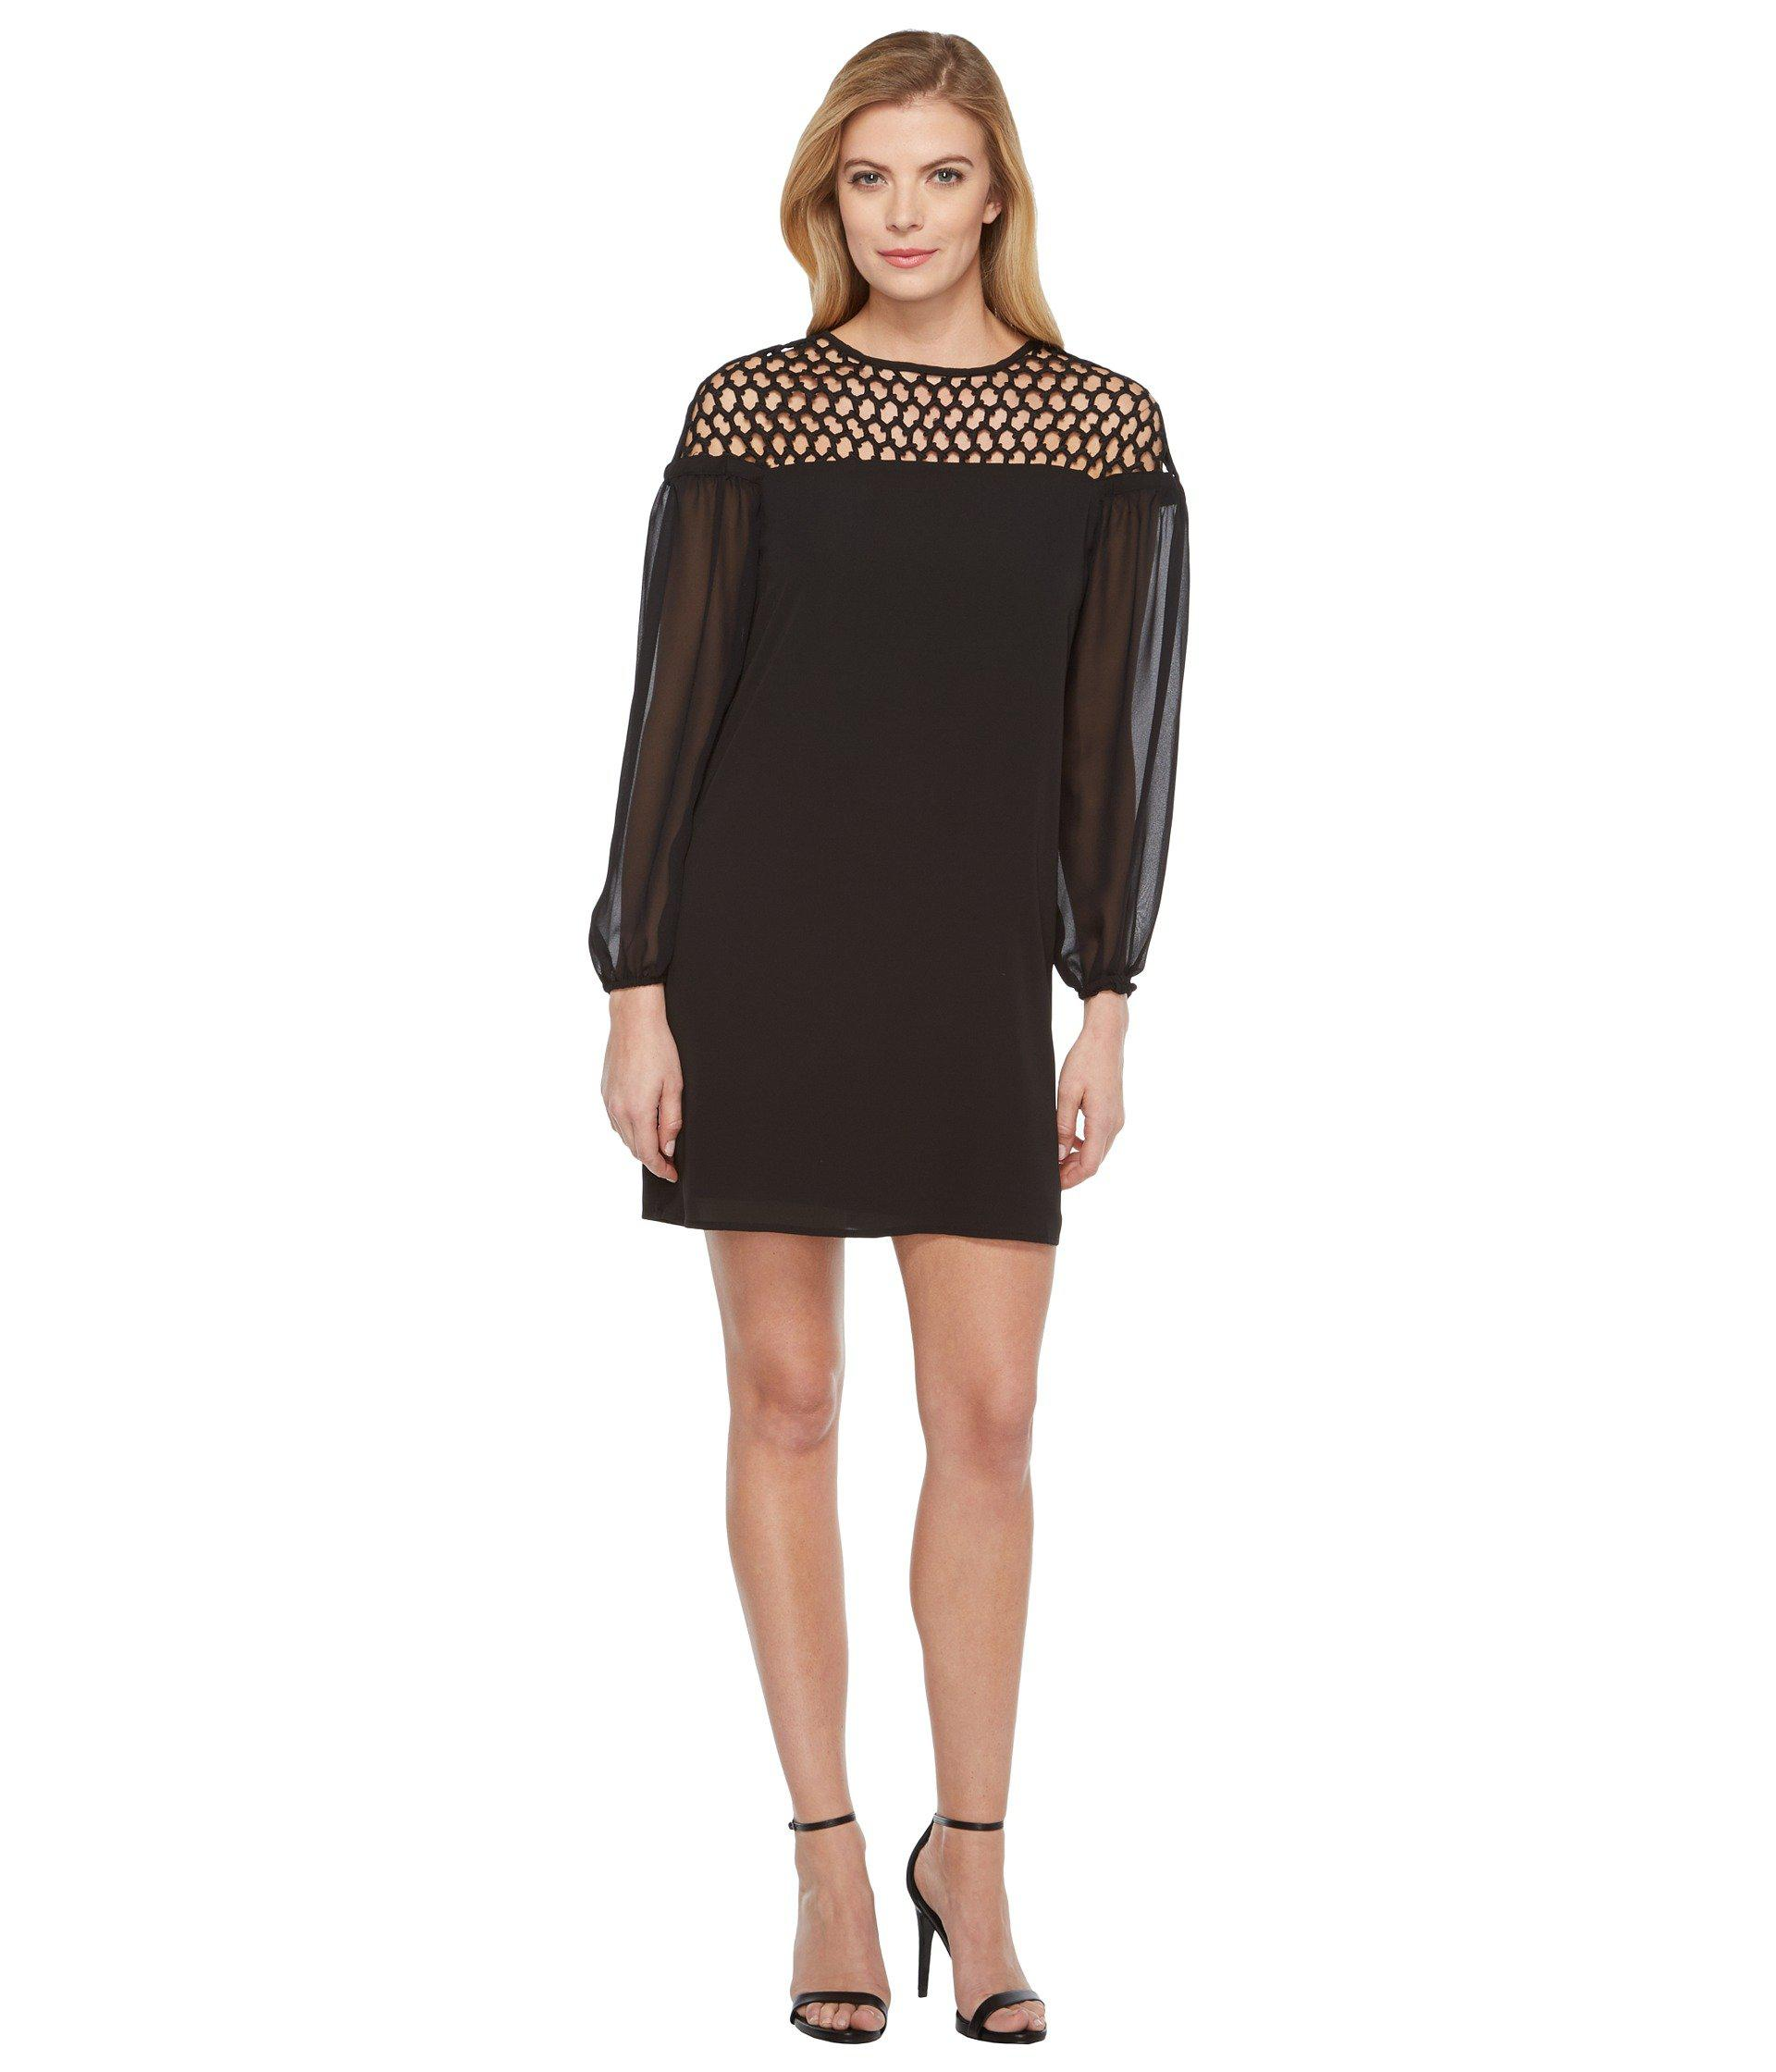 1eb4aa699e Lyst - Laundry by Shelli Segal 3 4 Sleeve Cocktail Dress in Black ...